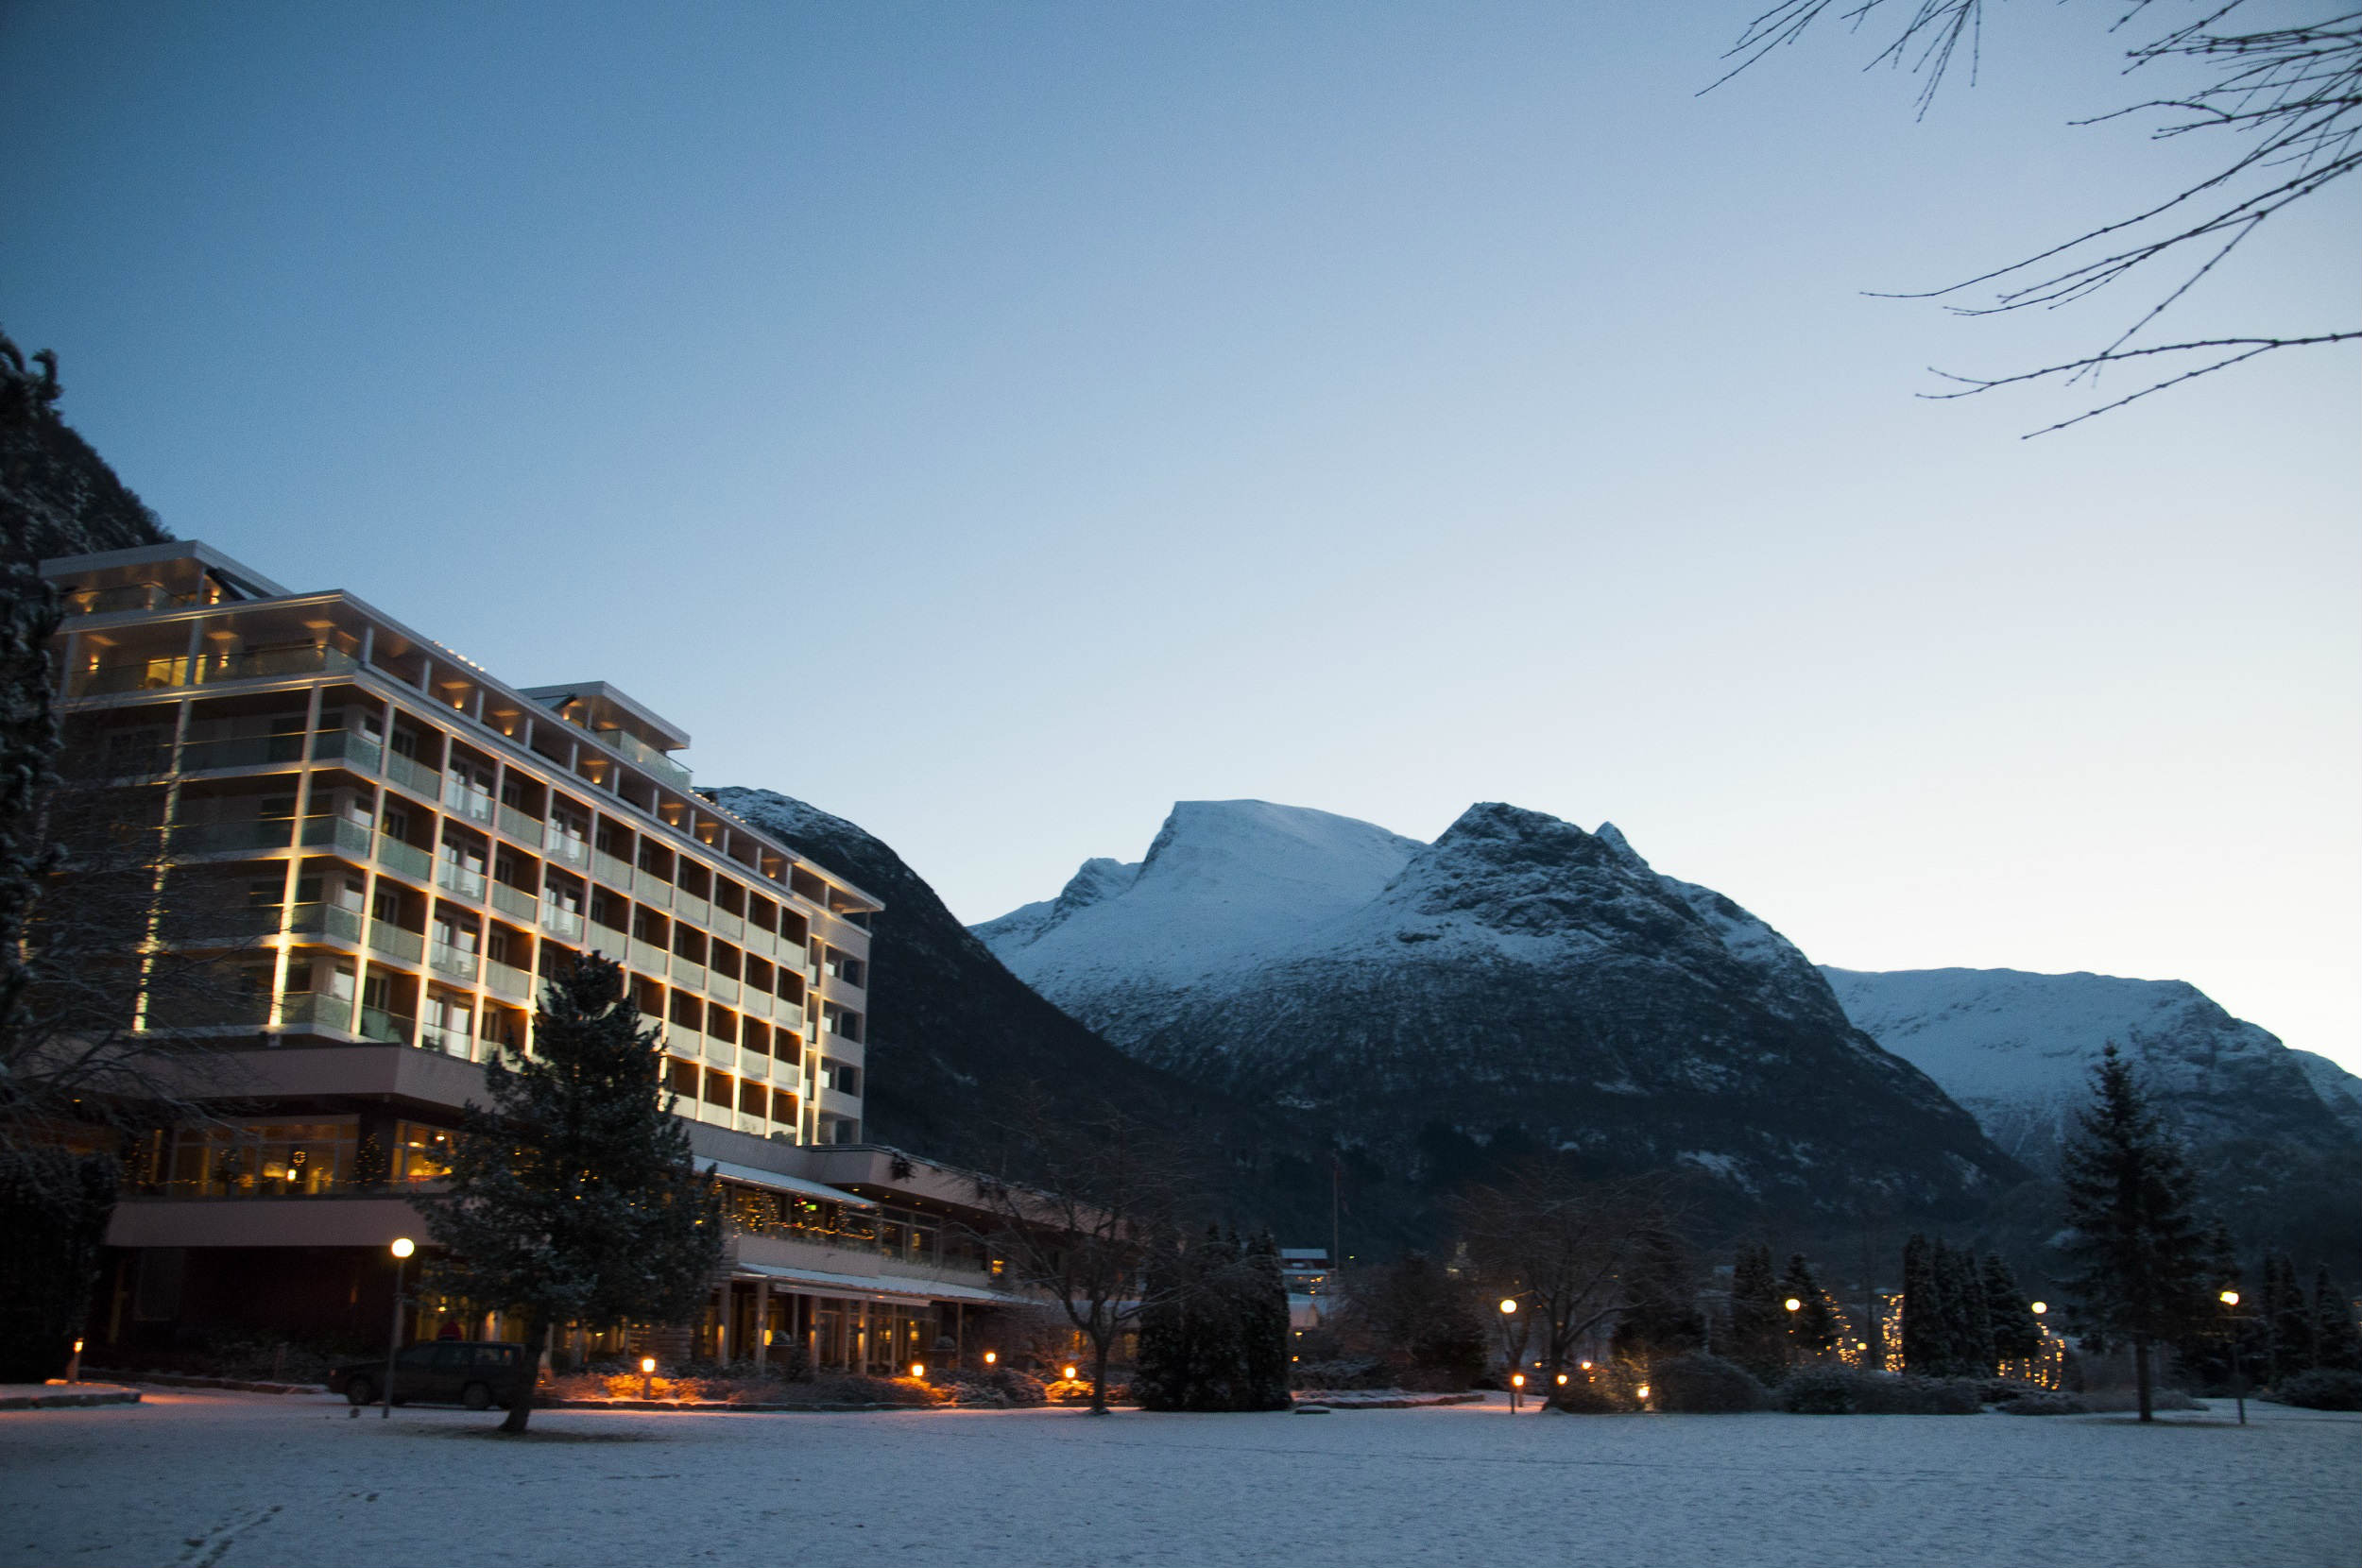 Hotel Alexandra - Traditions from 1884, and modern facilities combined - in one of Norway's best hotels.